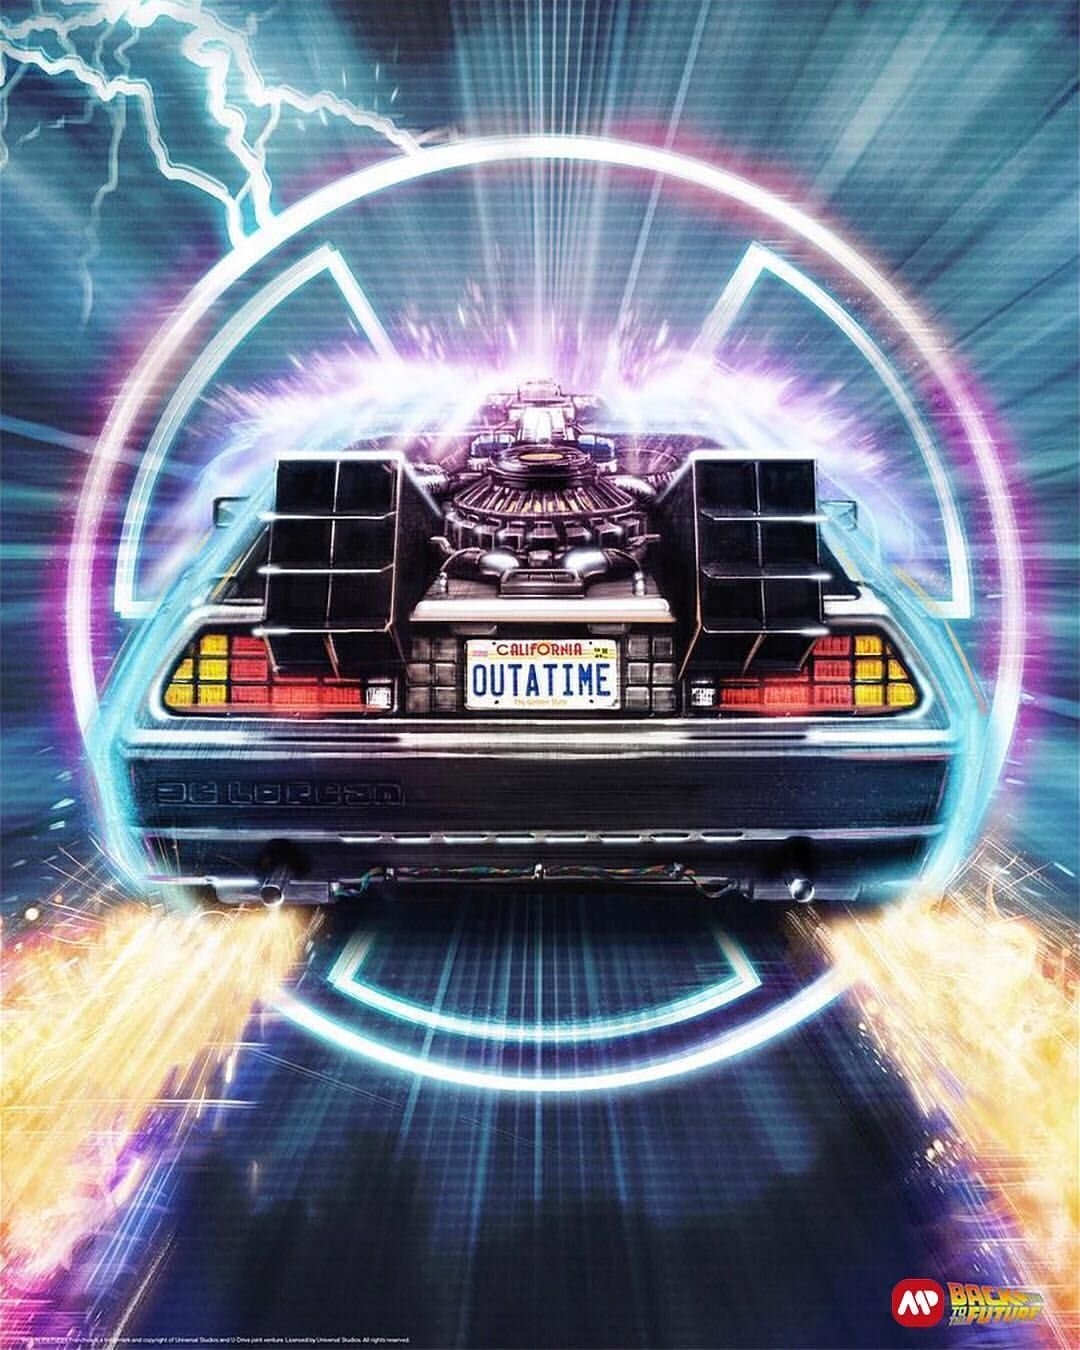 Back To The Future By Sam Gilbey Sambgilbey Posteres De Filmes